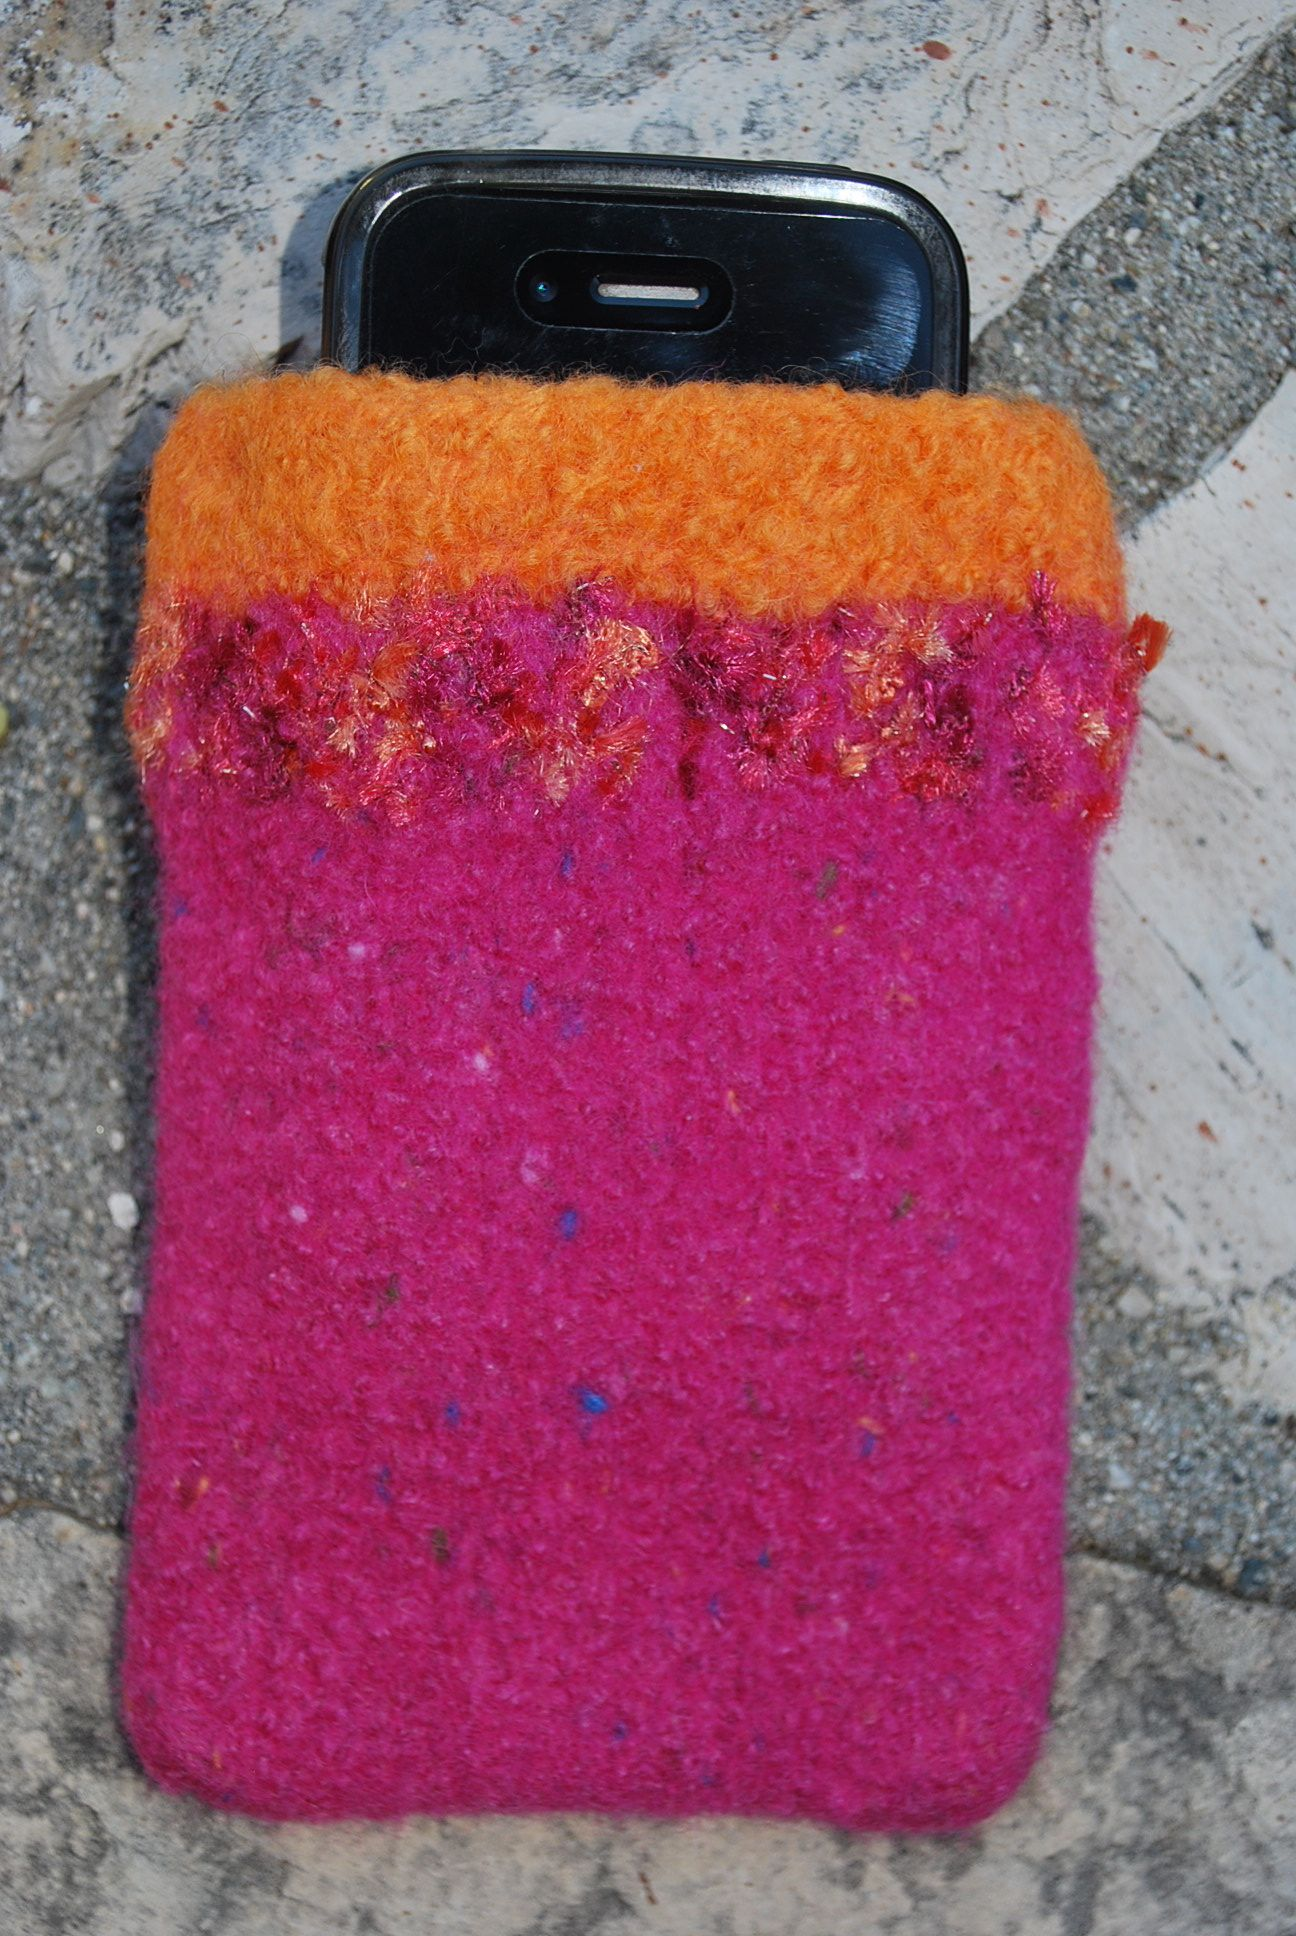 """This phone case is hand-knit and felted from 100% wool yarn. The result is a super sturdy and fun protective pouch. The dimensions are 5 1/2"""" x 3 1/2"""". It fits an iphone/ipod or most other cell phones. Colors are hot pink and light orange with a multicolored novelty yarn accent."""